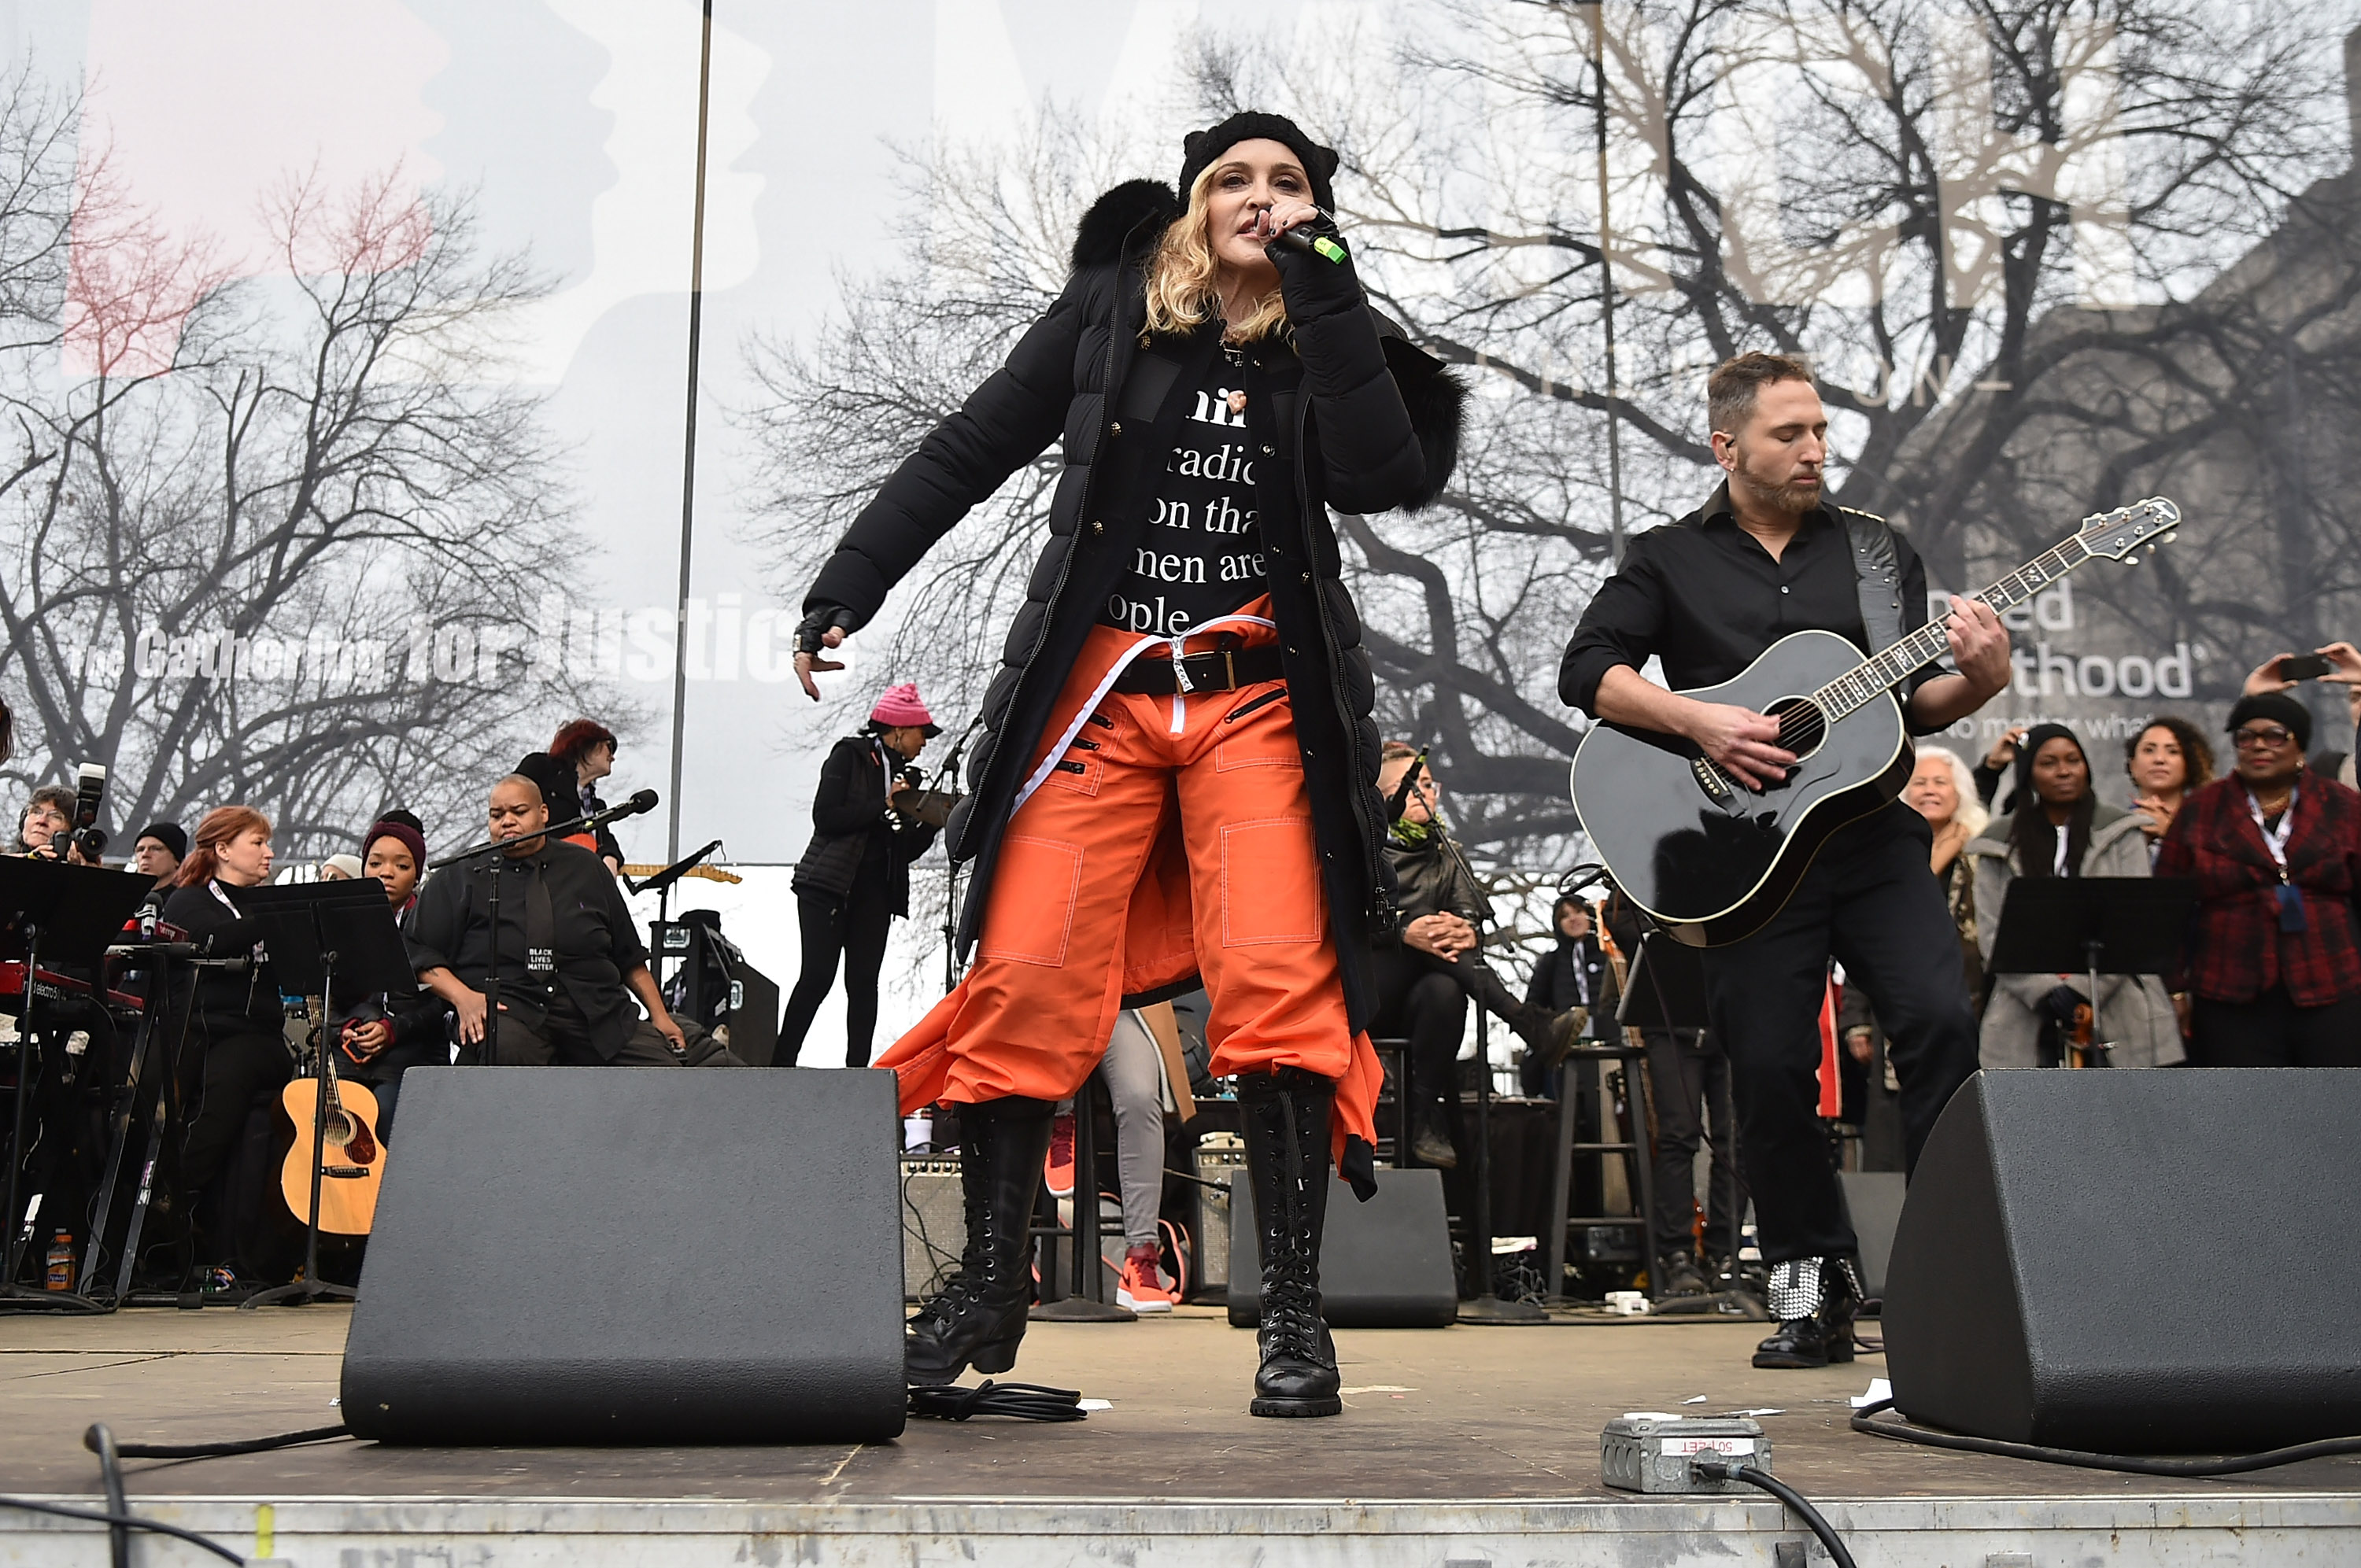 Madonna performs onstage during the Women's March on Washington on January 21, 2017 in Washington, DC. (Photo by Theo Wargo/Getty Images)